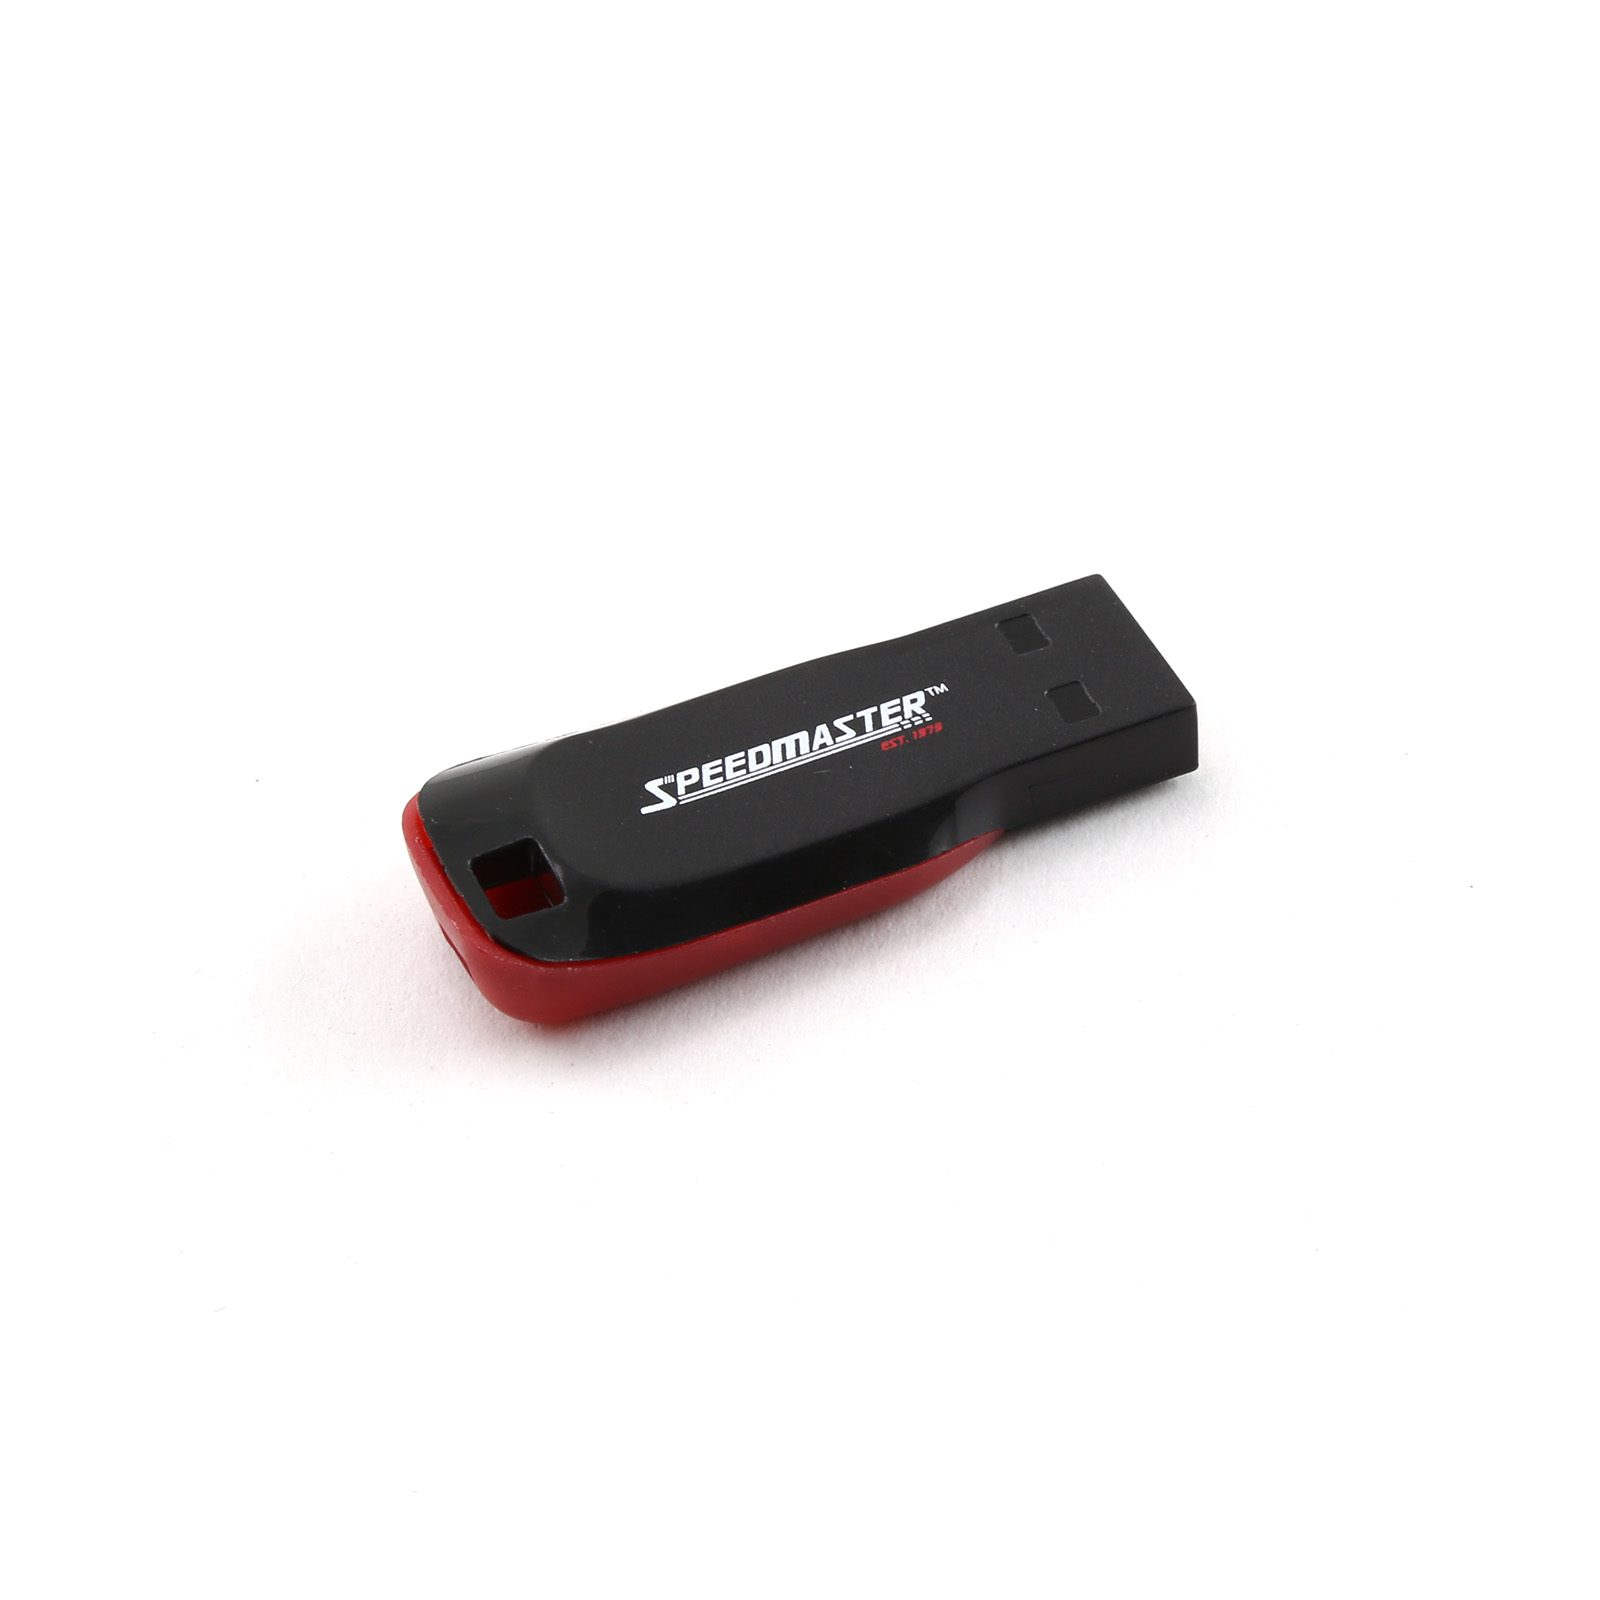 SanDisk Cruzer Blade 32GB USB 2.0 Flash Drive 32G Stick Pen Key Memory Stick